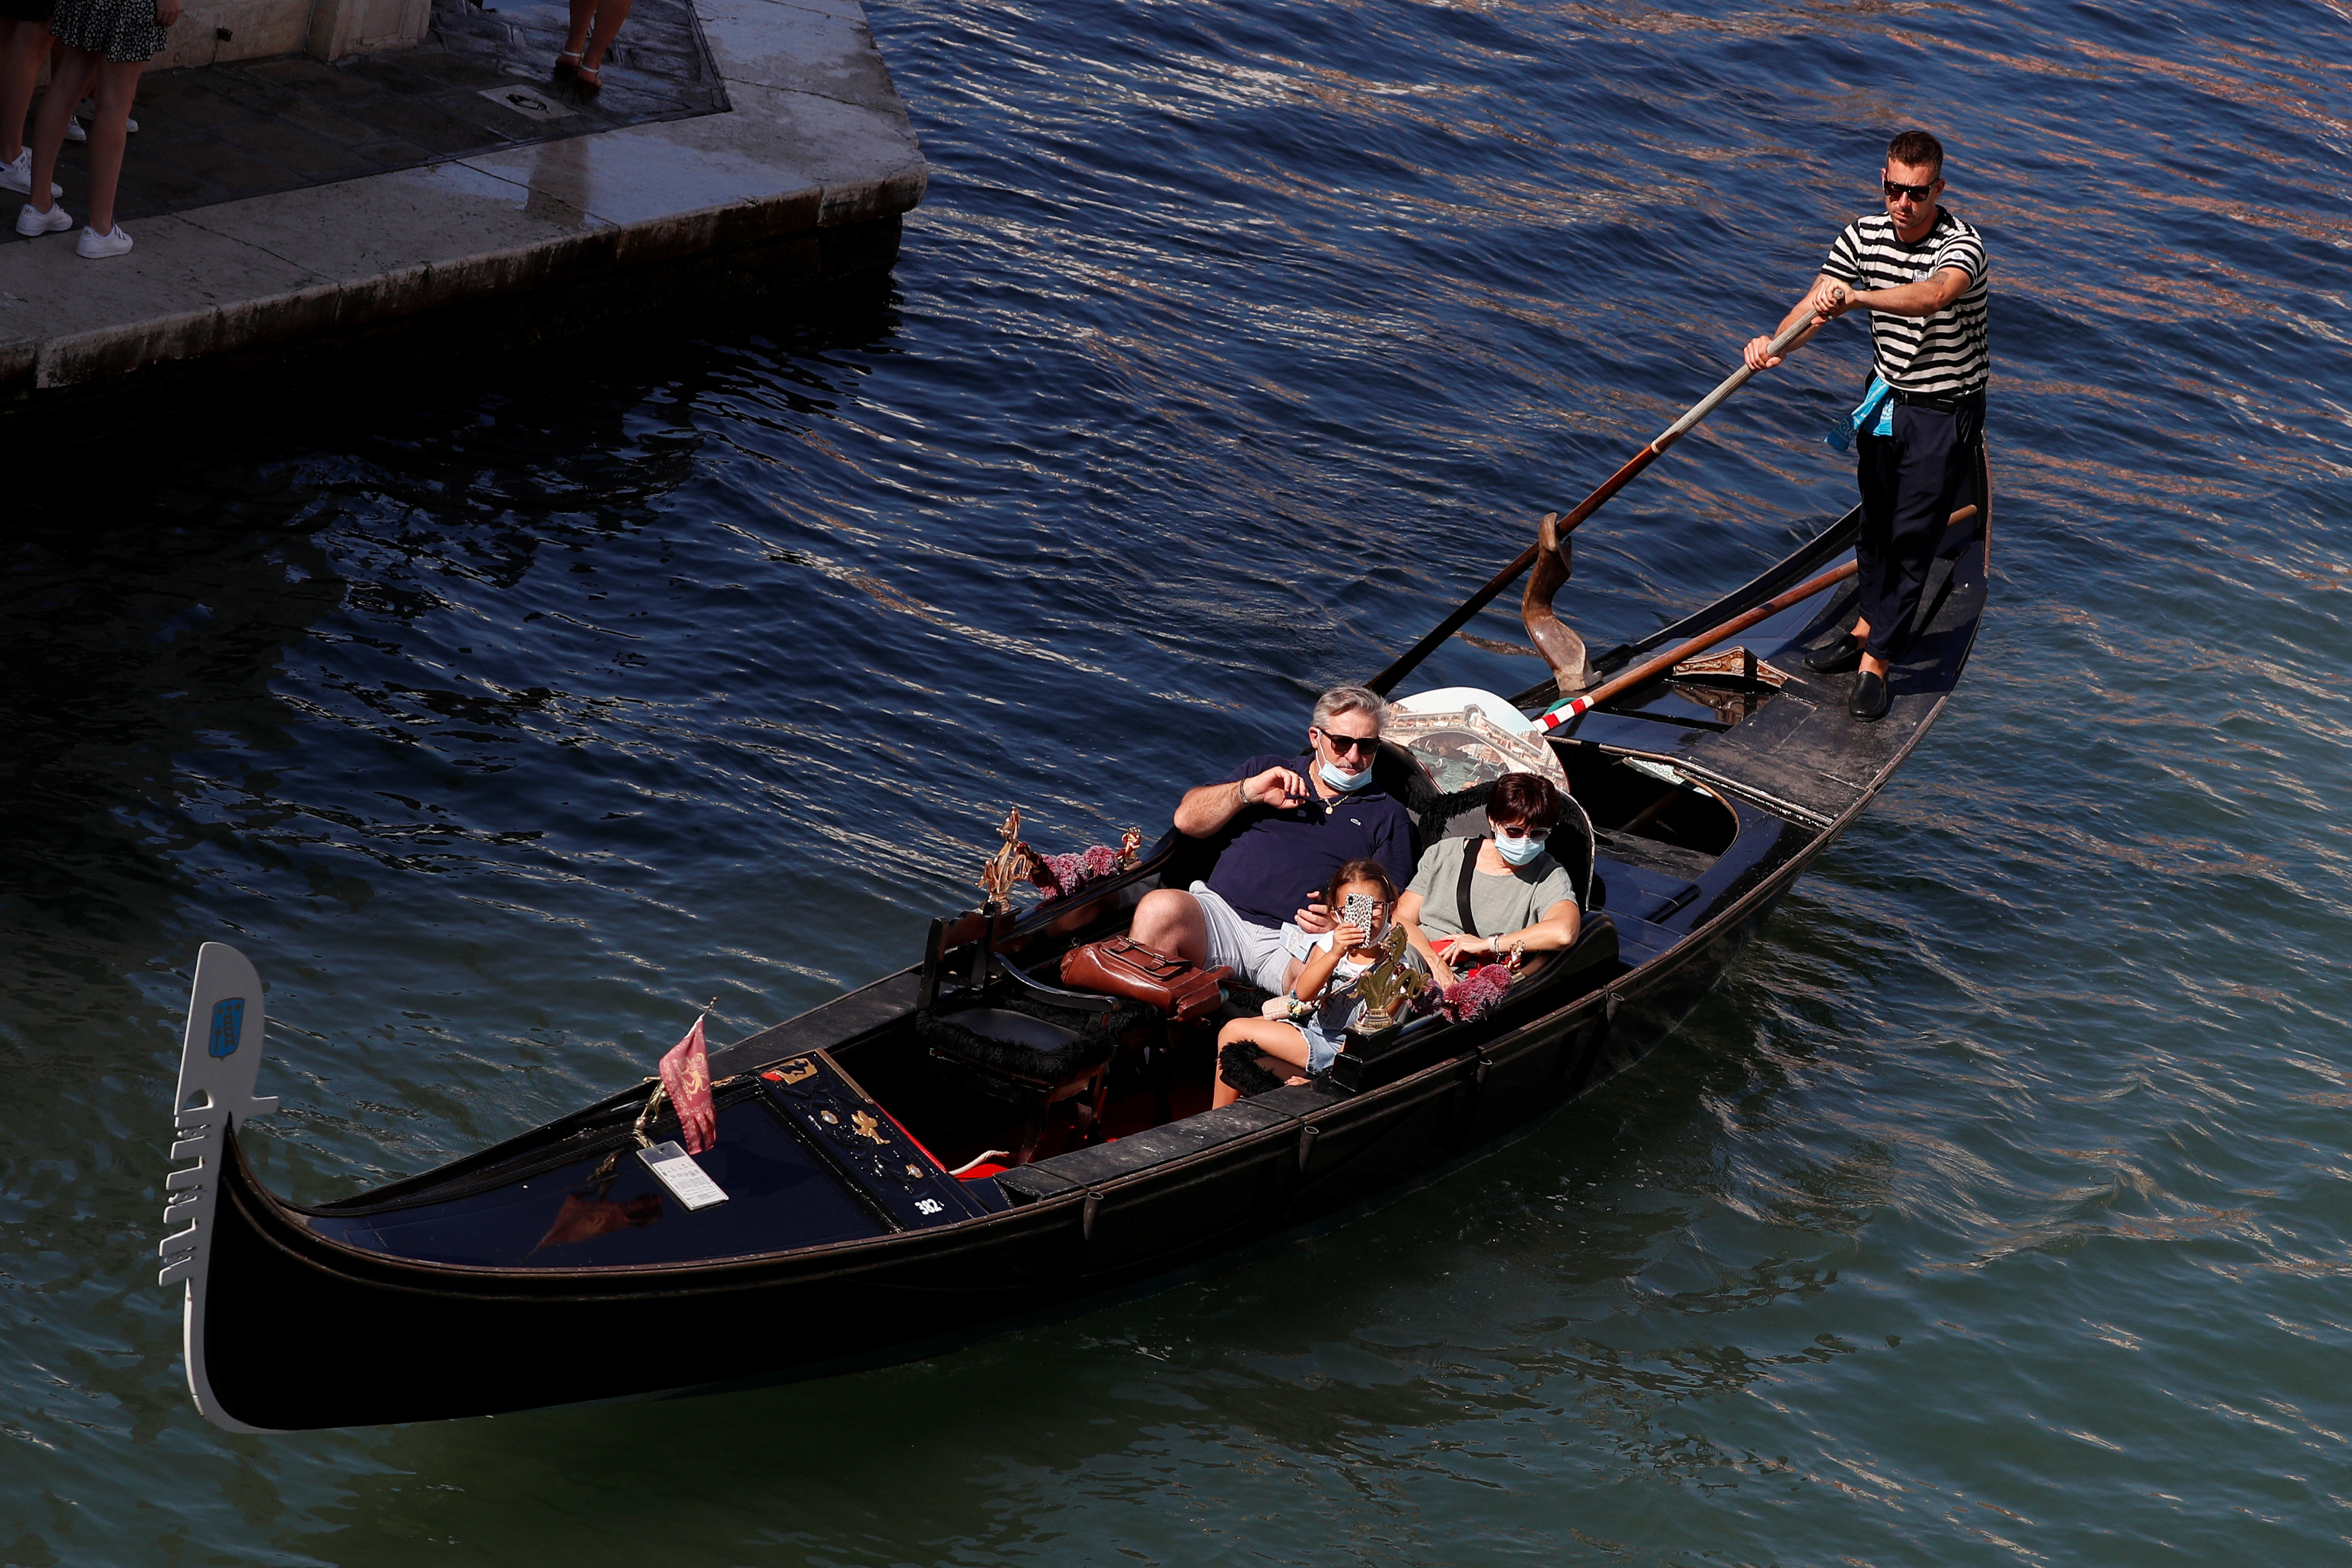 Tourists wear protective face masks as they take a gondola ride near Rialto bridge following the outbreak of the coronavirus disease (COVID-19) in Venice, Italy, September 9, 2020.